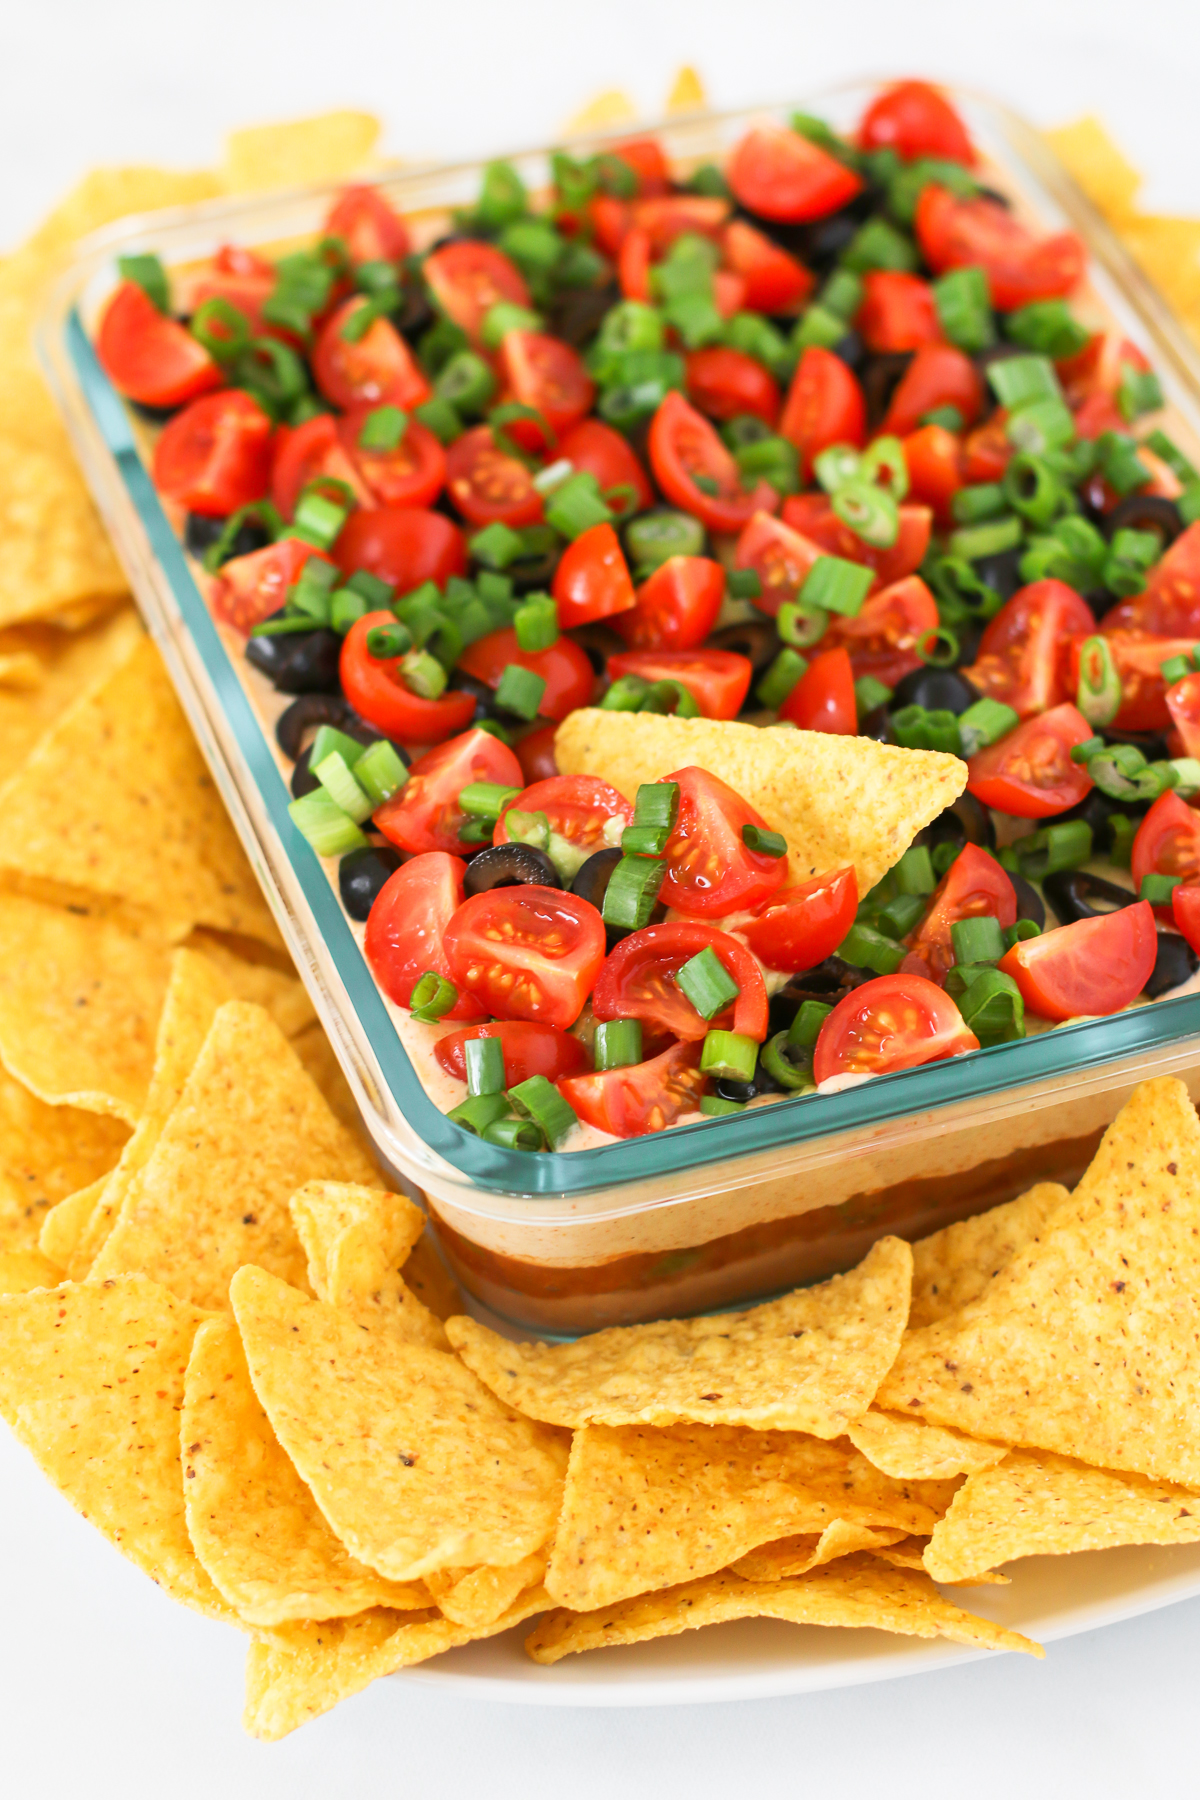 Vegan 7 Layer Bean Dip. Layers of beans, guacamole, creamy taco sauce, salsa and all of the vibrant Mexican flavors.